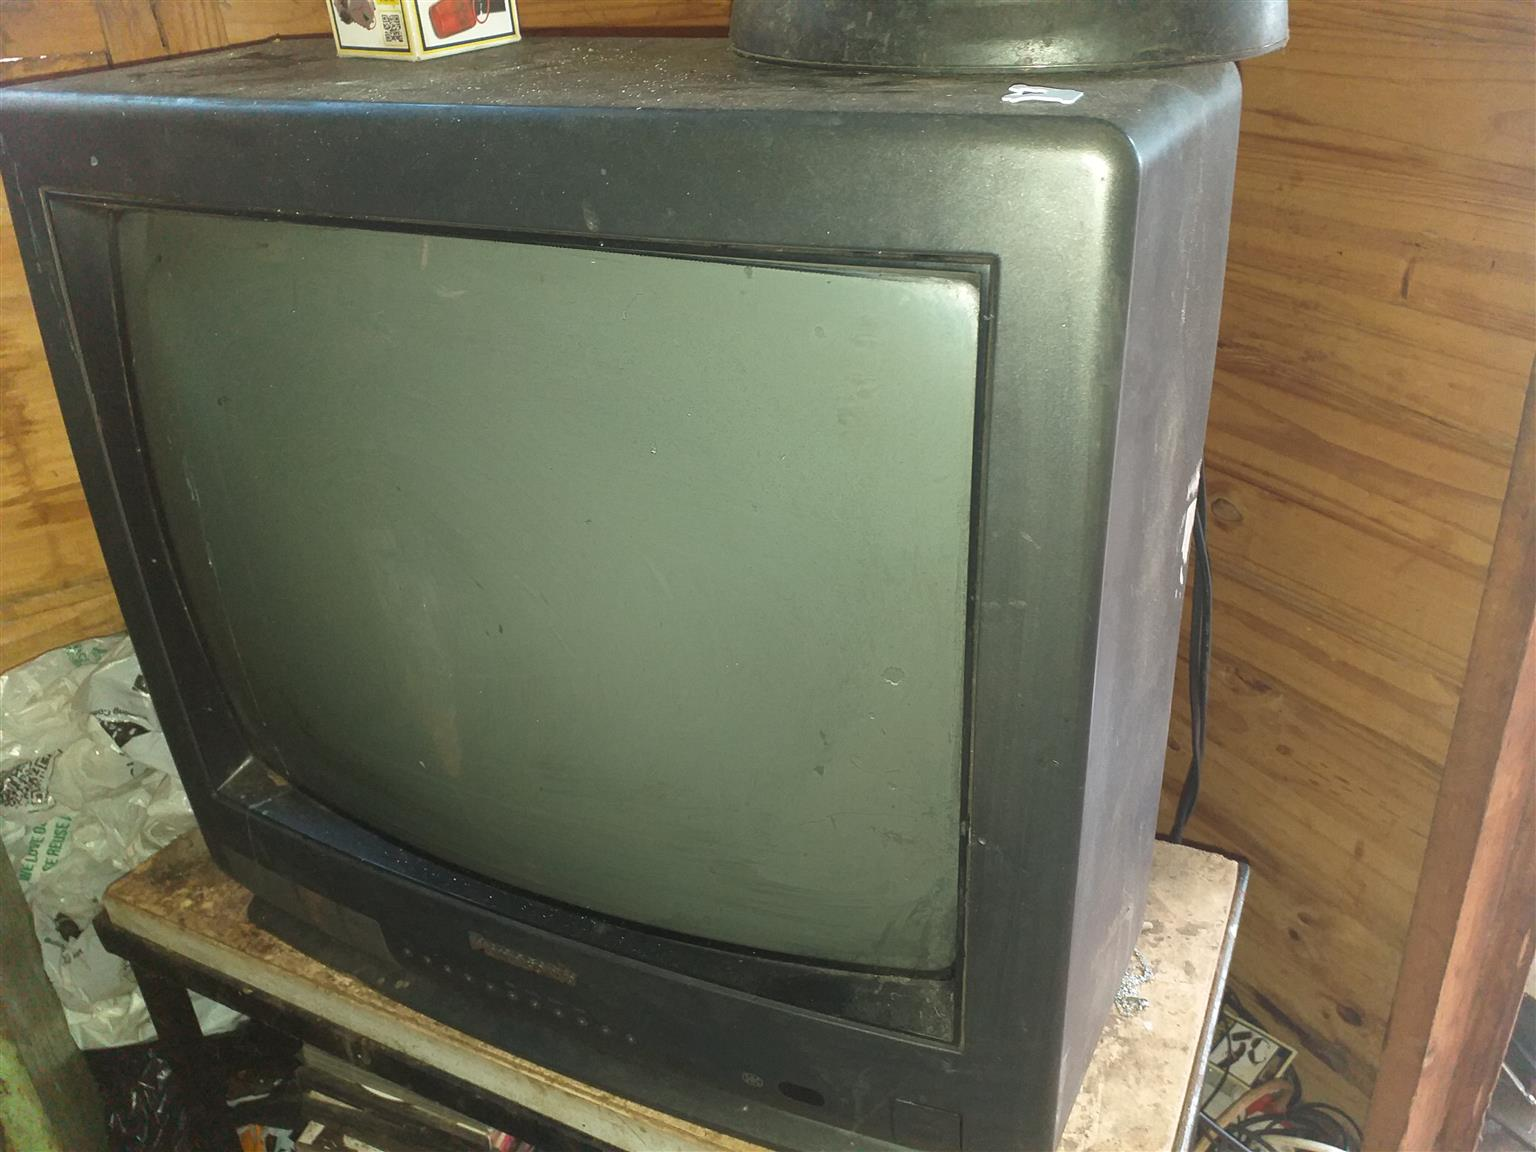 Old uwanted t.v please